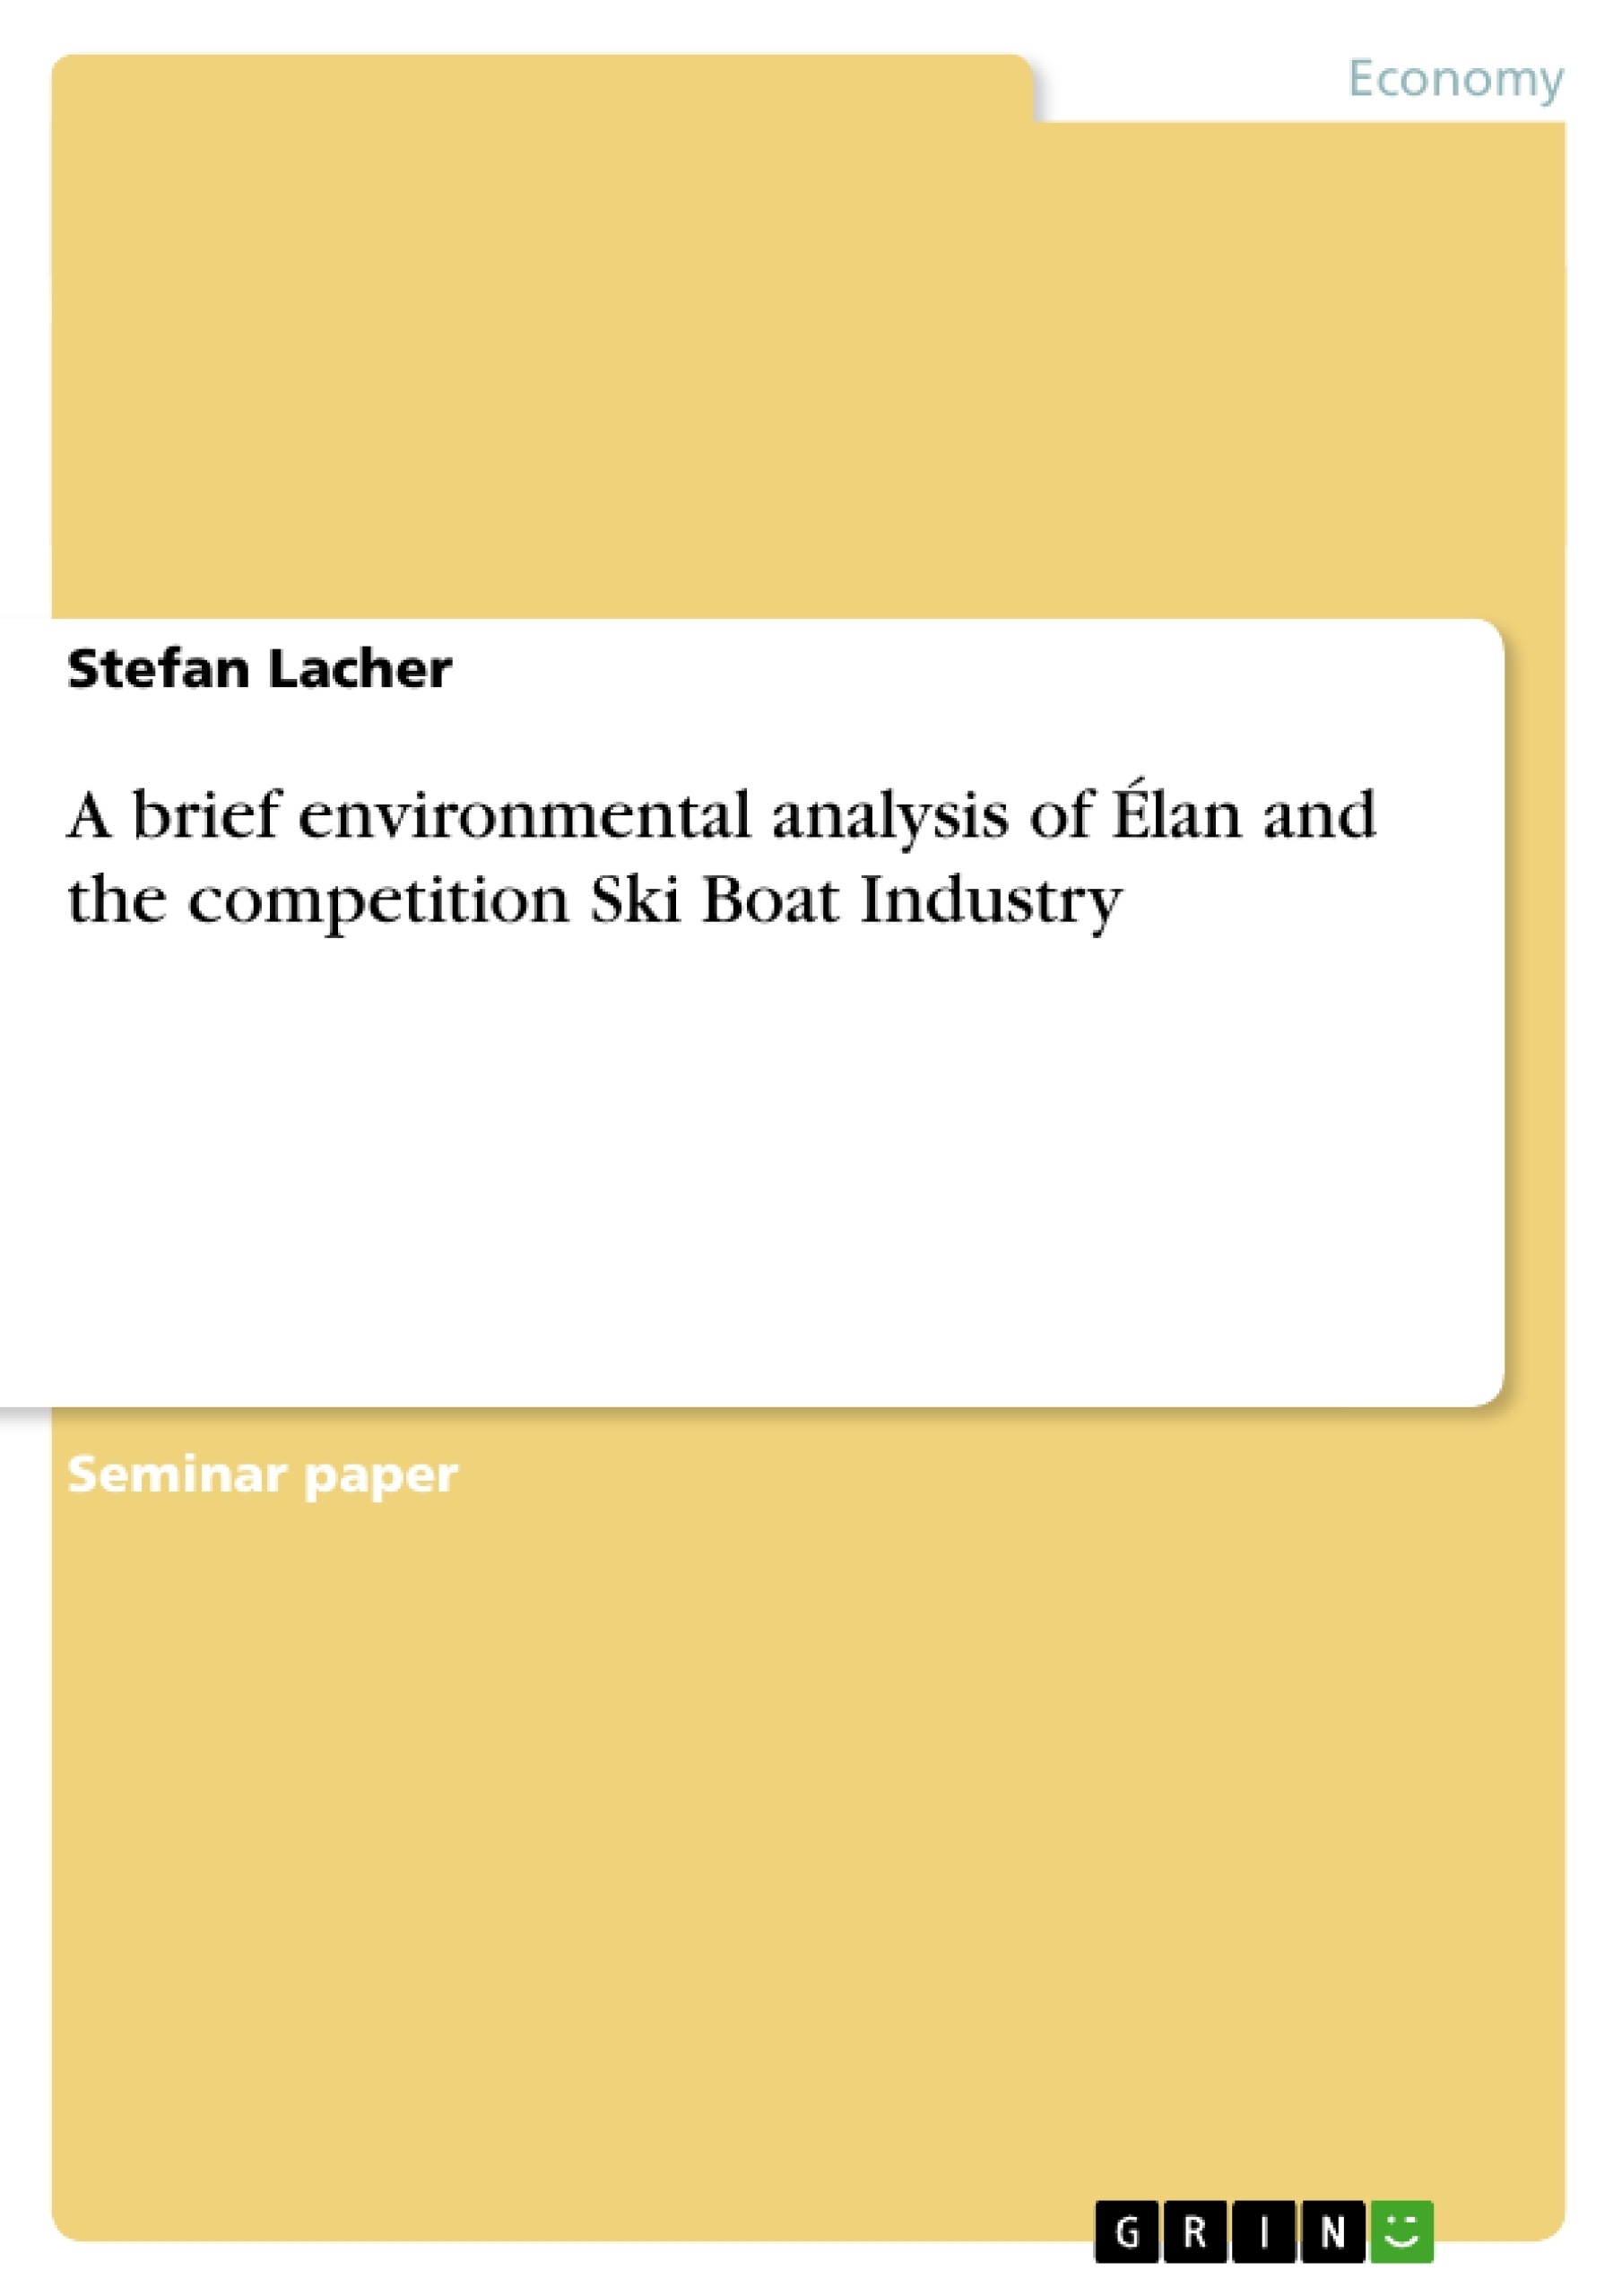 Title: A brief environmental analysis of Élan and the competition Ski Boat Industry